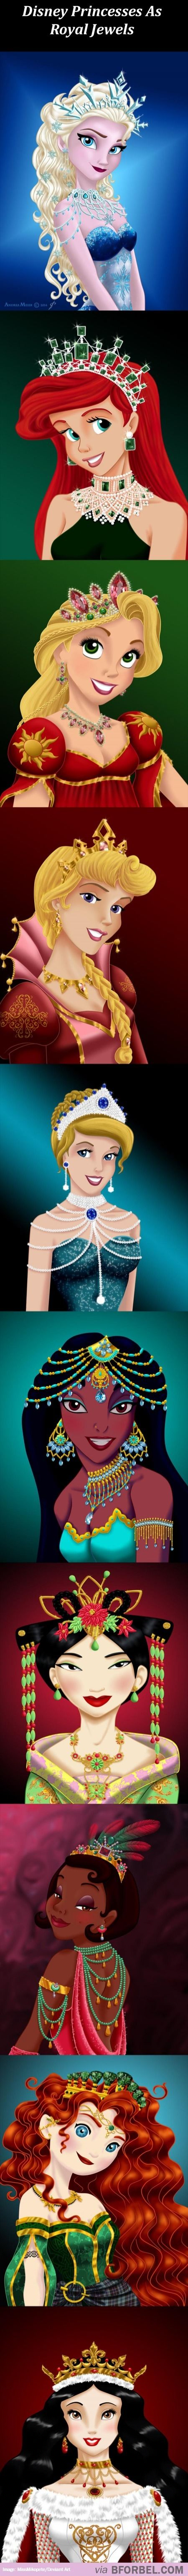 10 Disney Princesses With Their Royal Jewels…